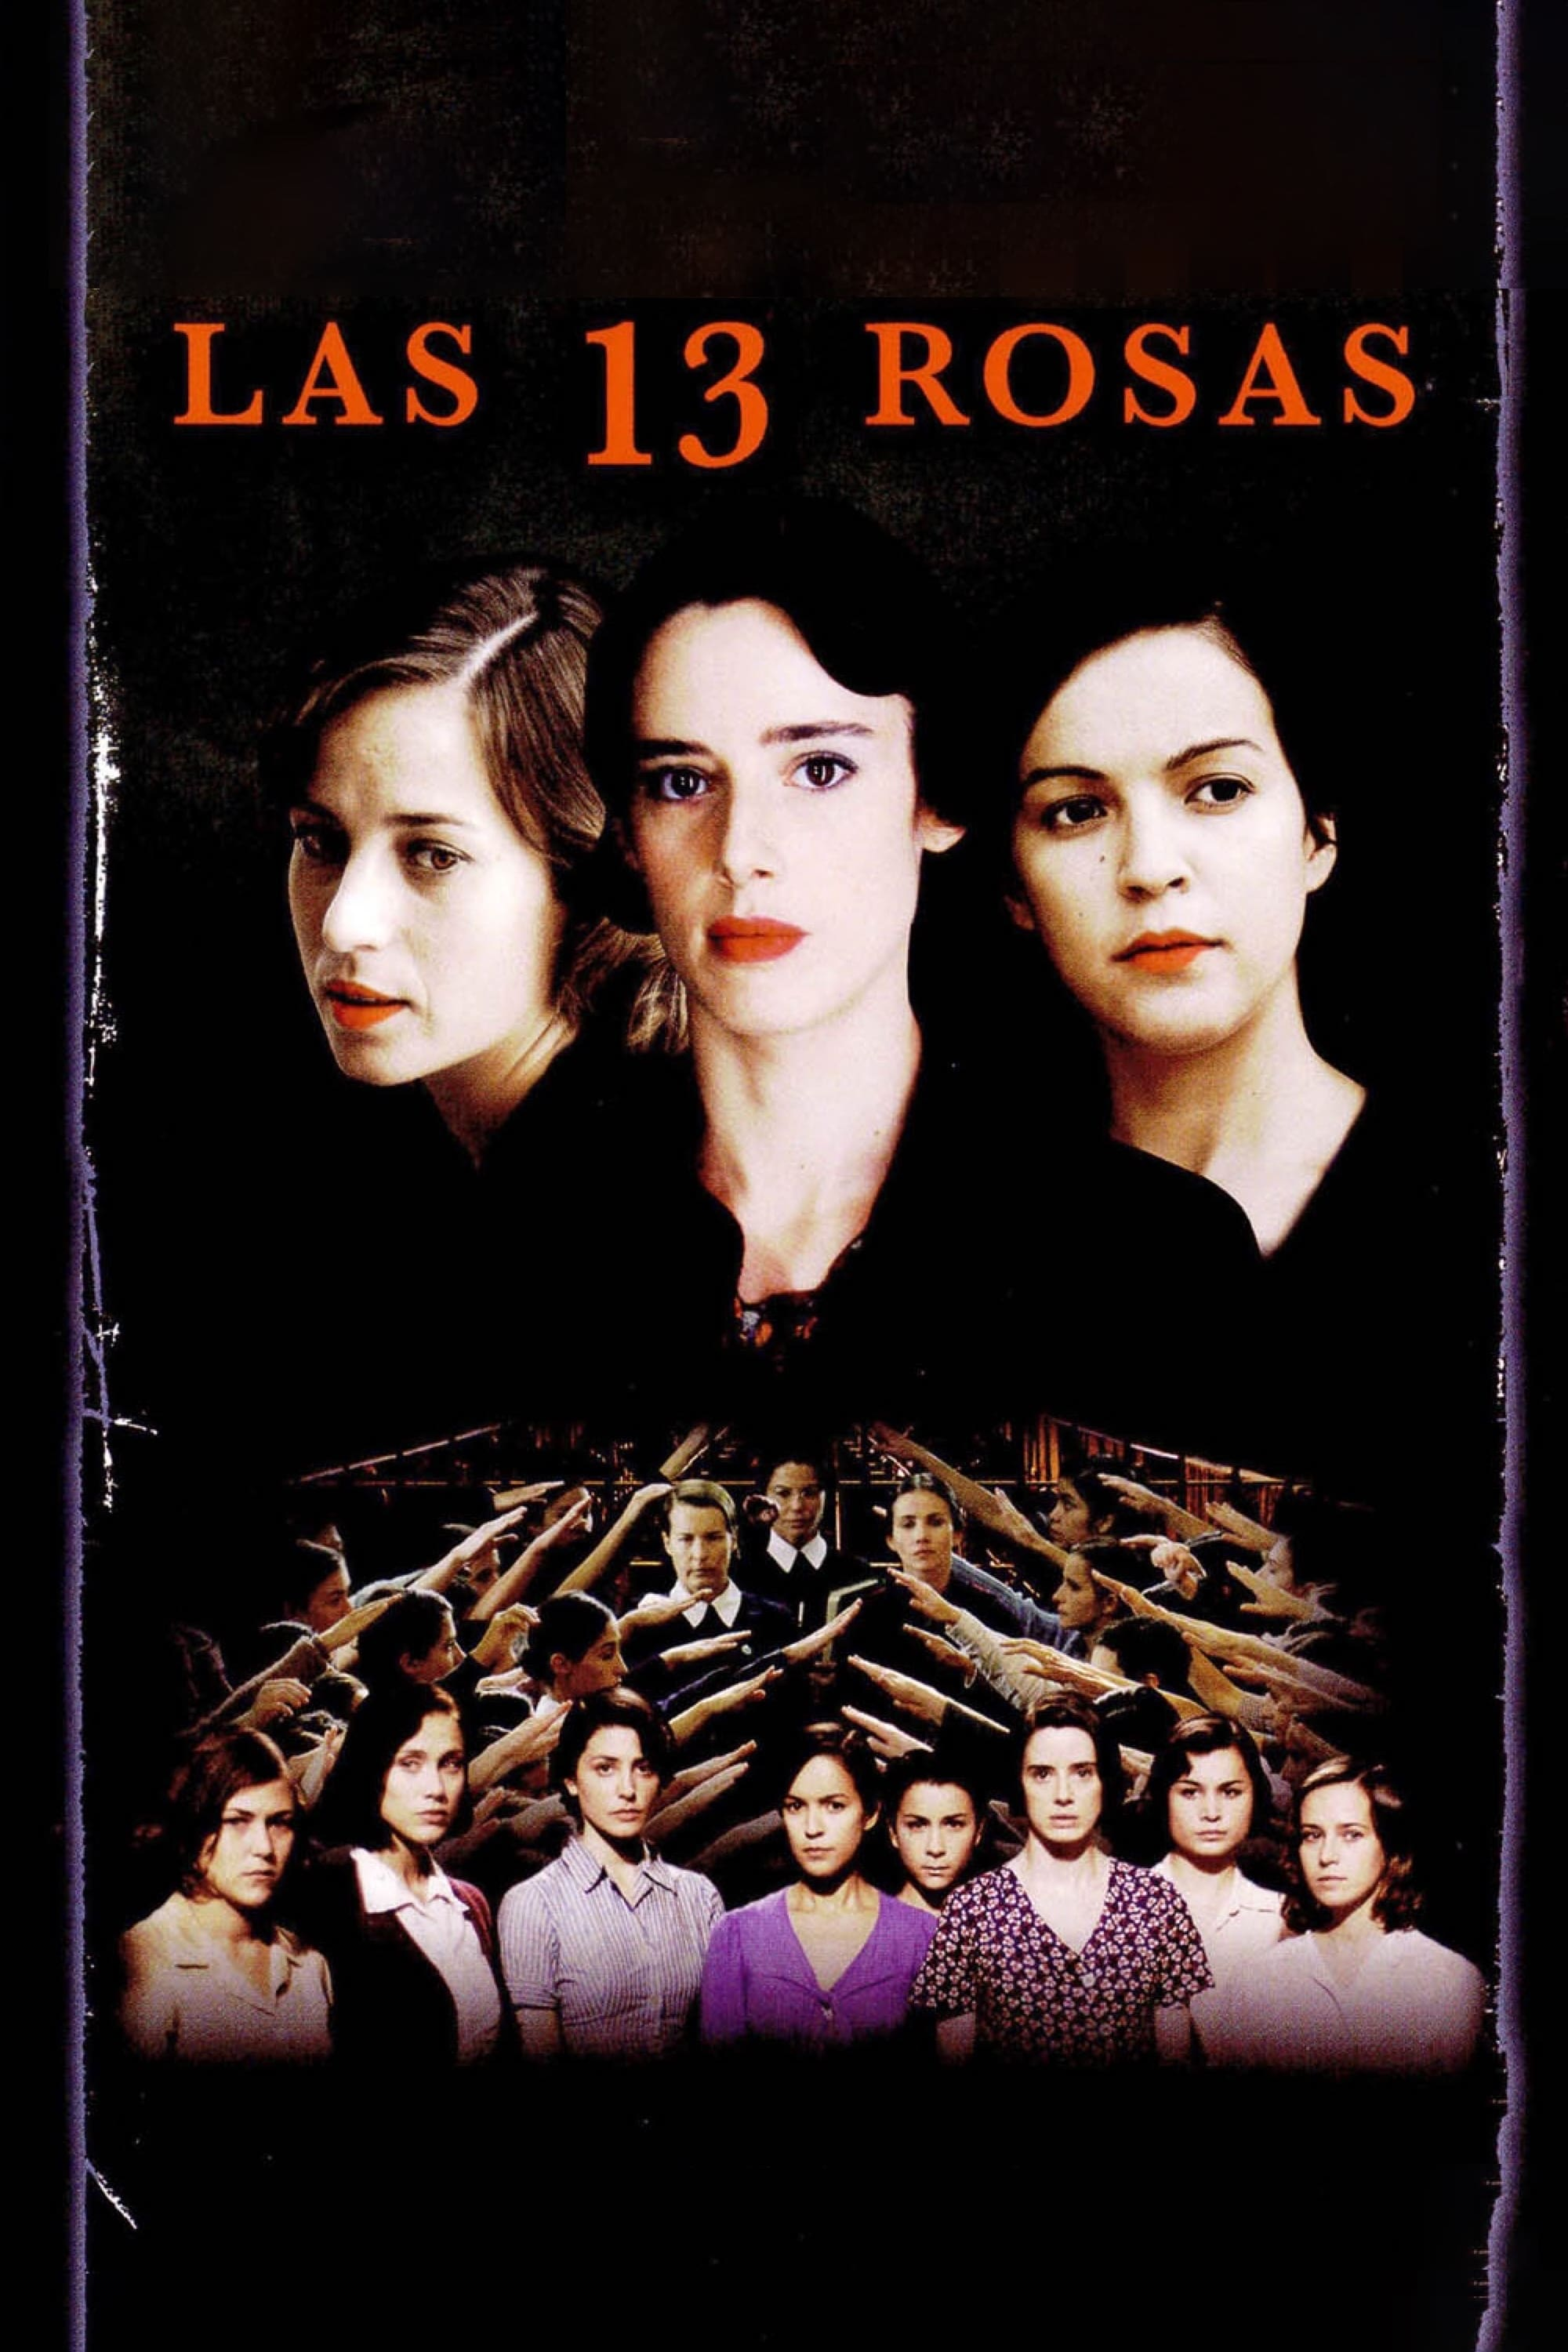 The 13 Roses